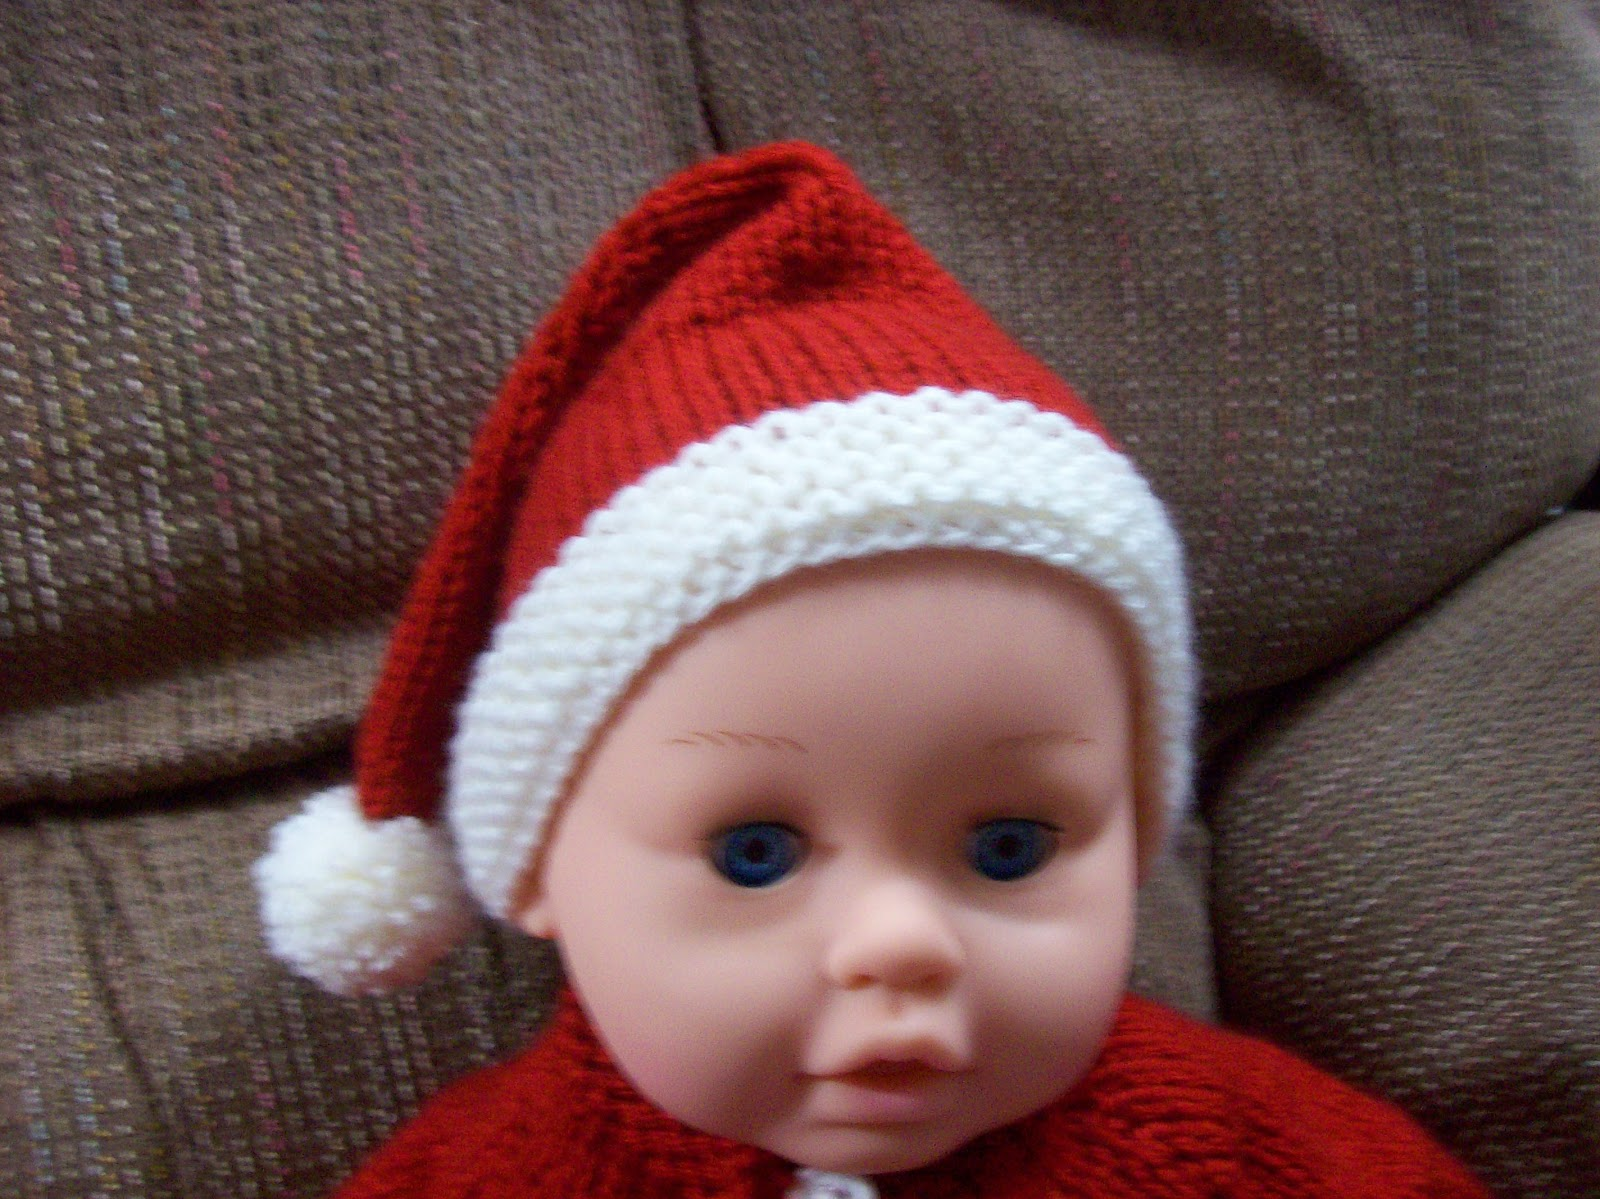 cheapest how to knit a baby christmas hat crochet pattern c7f65 2bea0 20971da95471